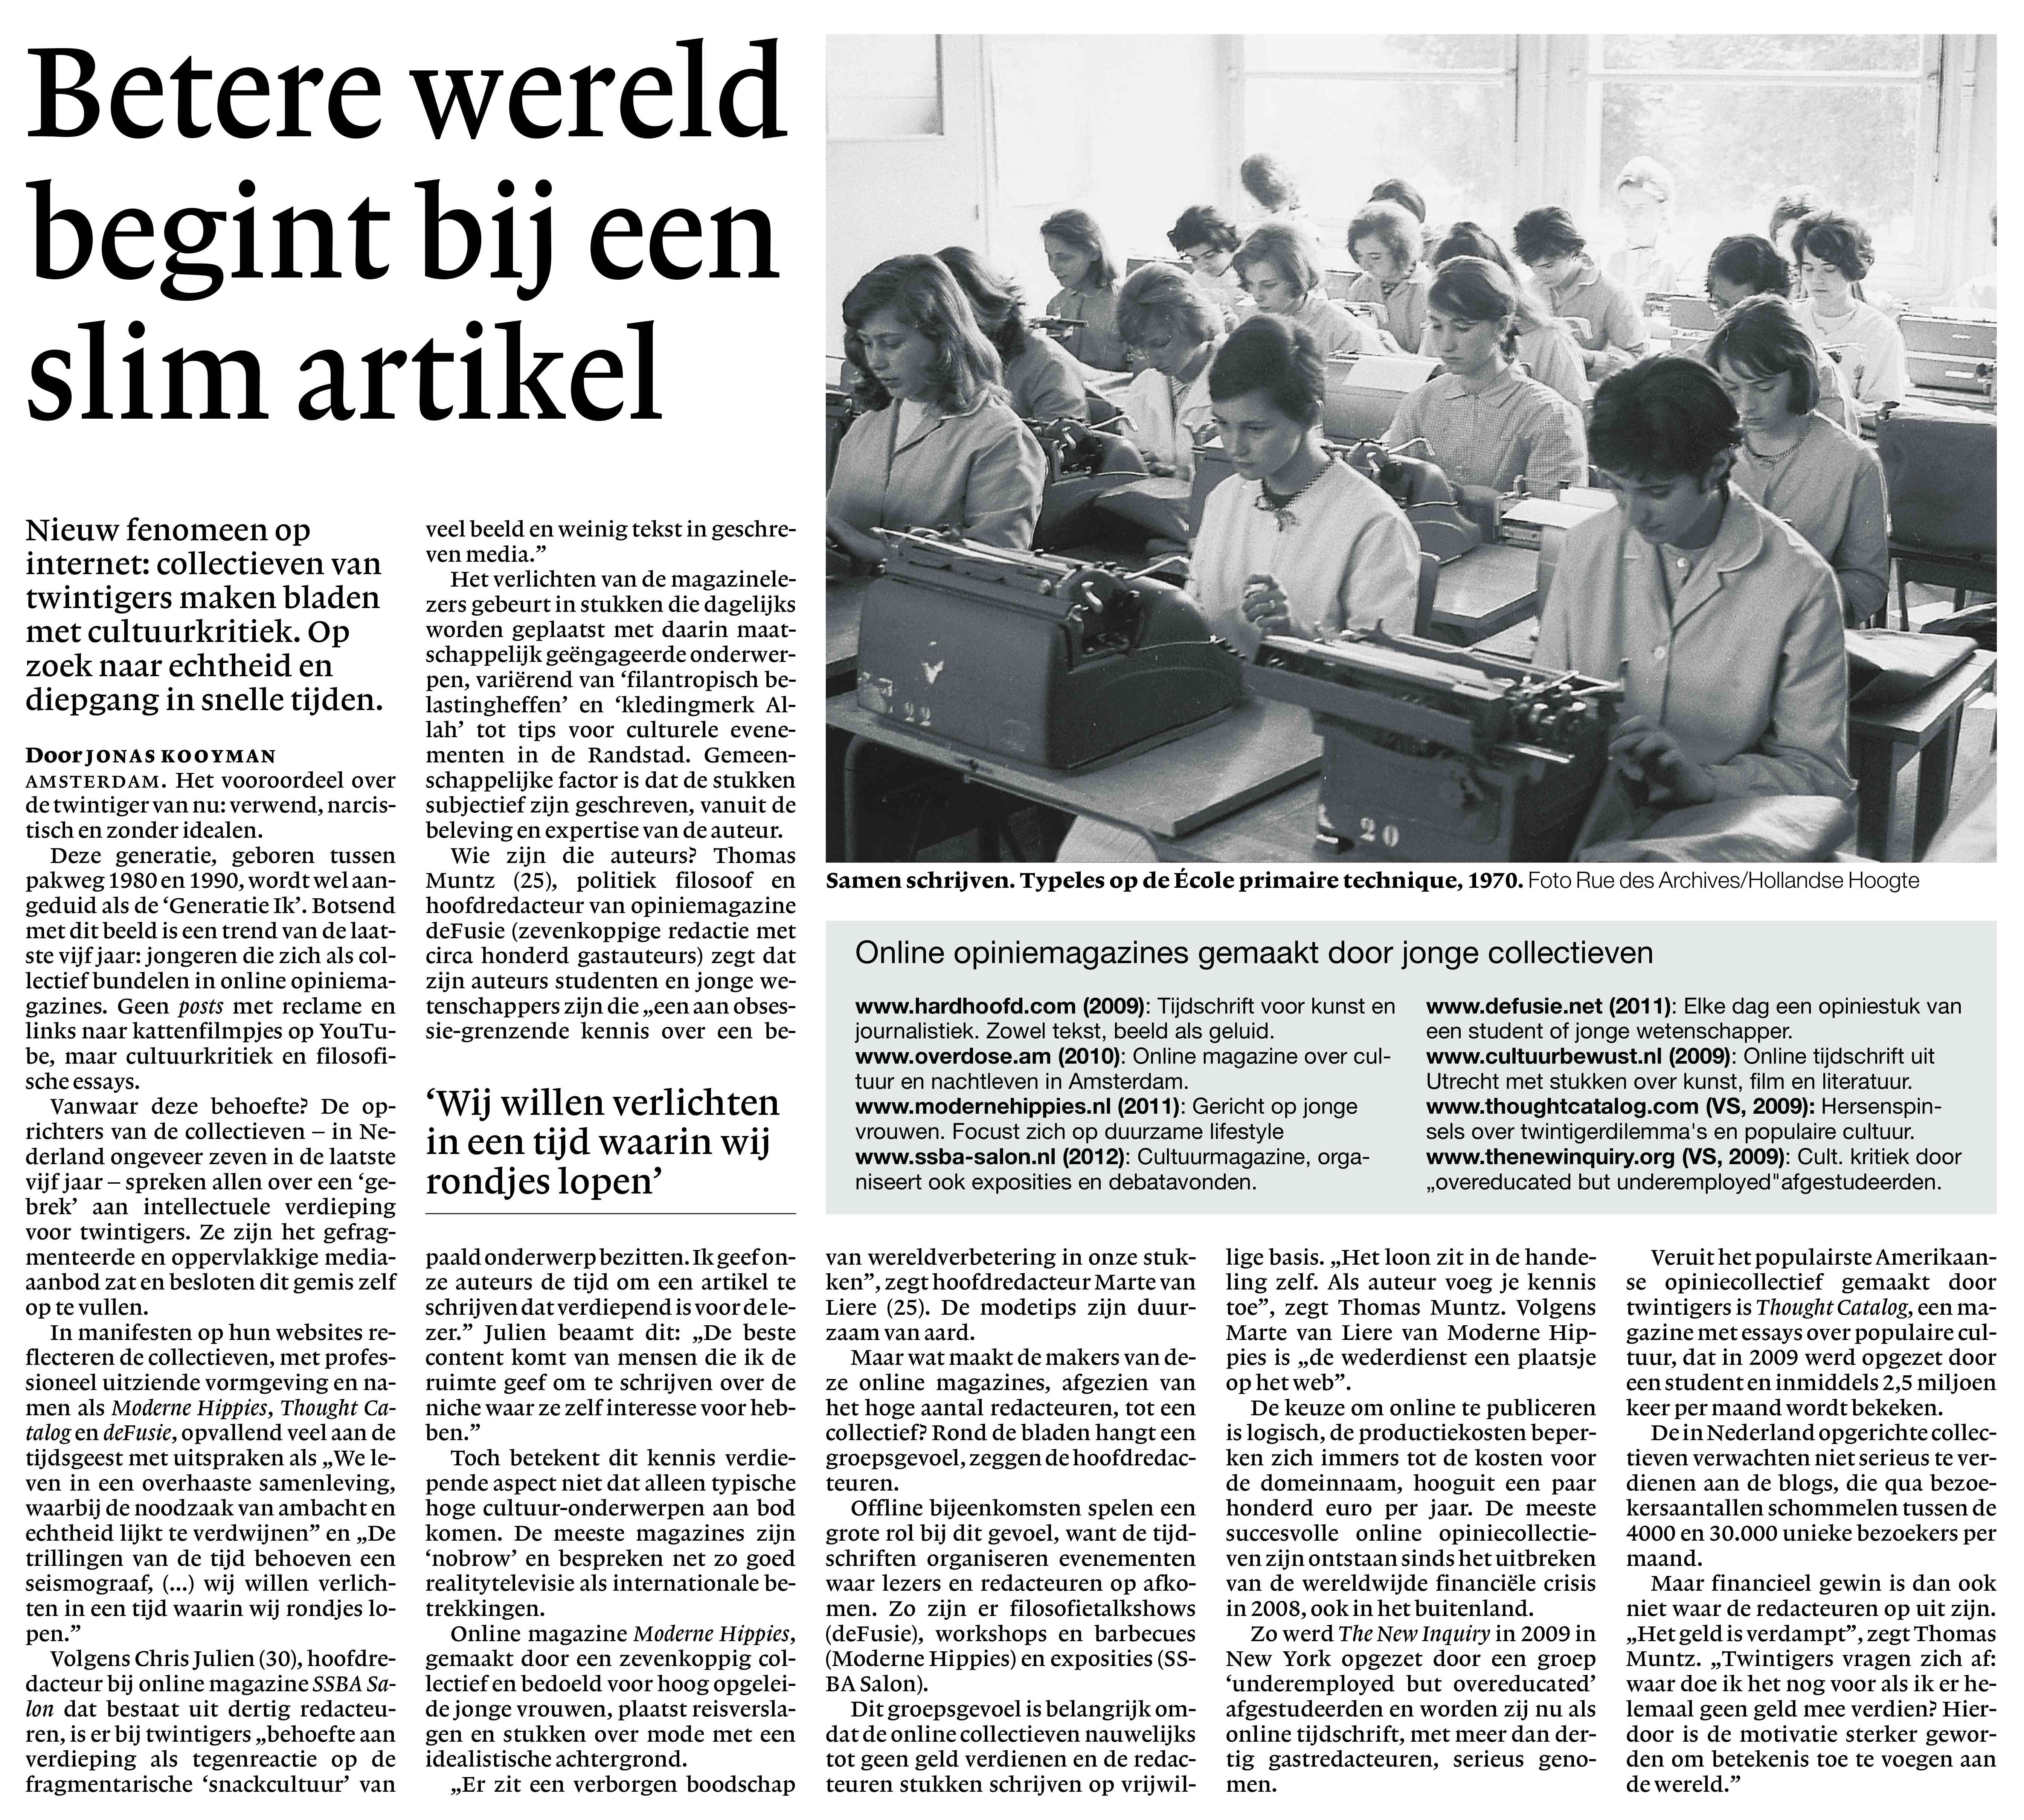 NRC_20130322_1_020_article6_ModerneHippies